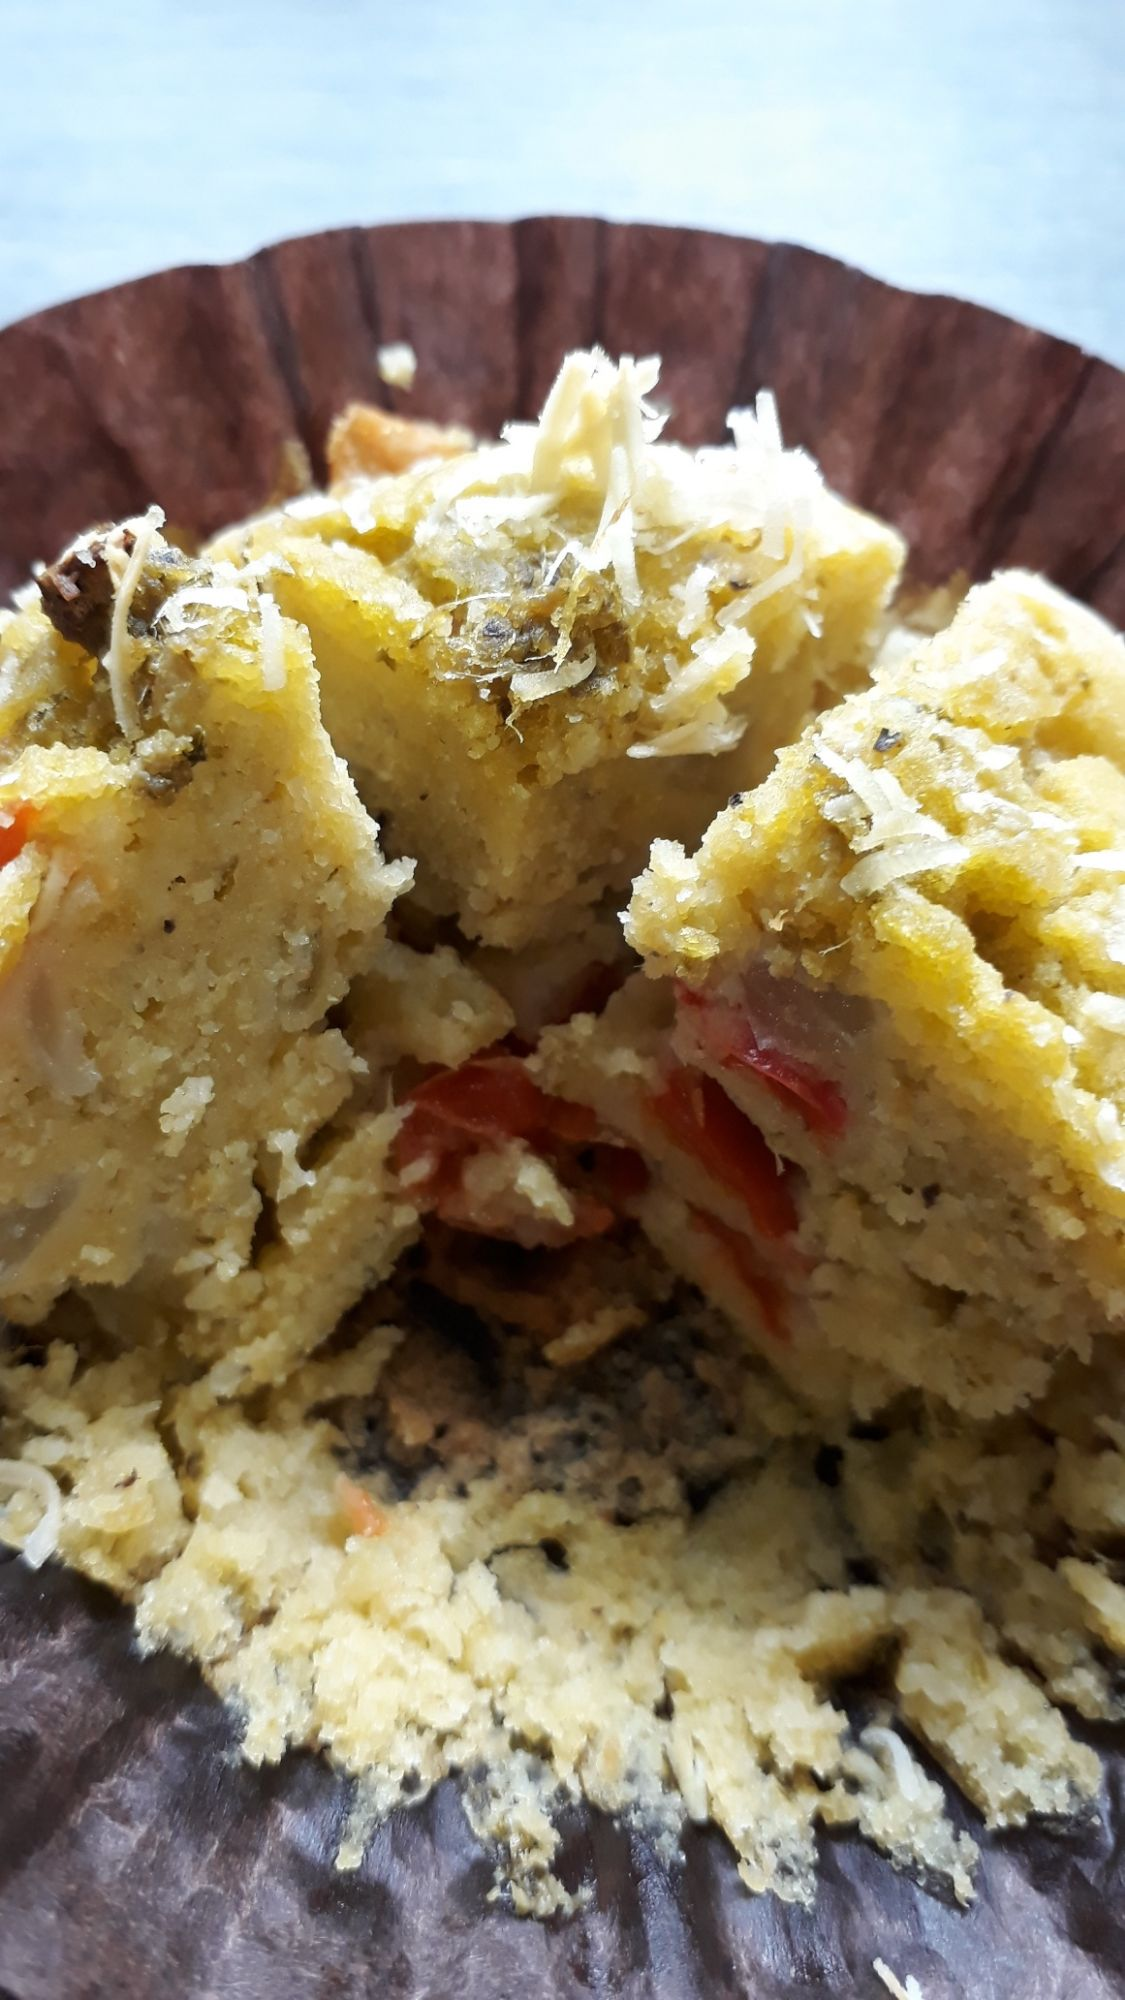 Pesto and Red Pepper Savoury Muffin made with gluten free flour and suitable for vegans